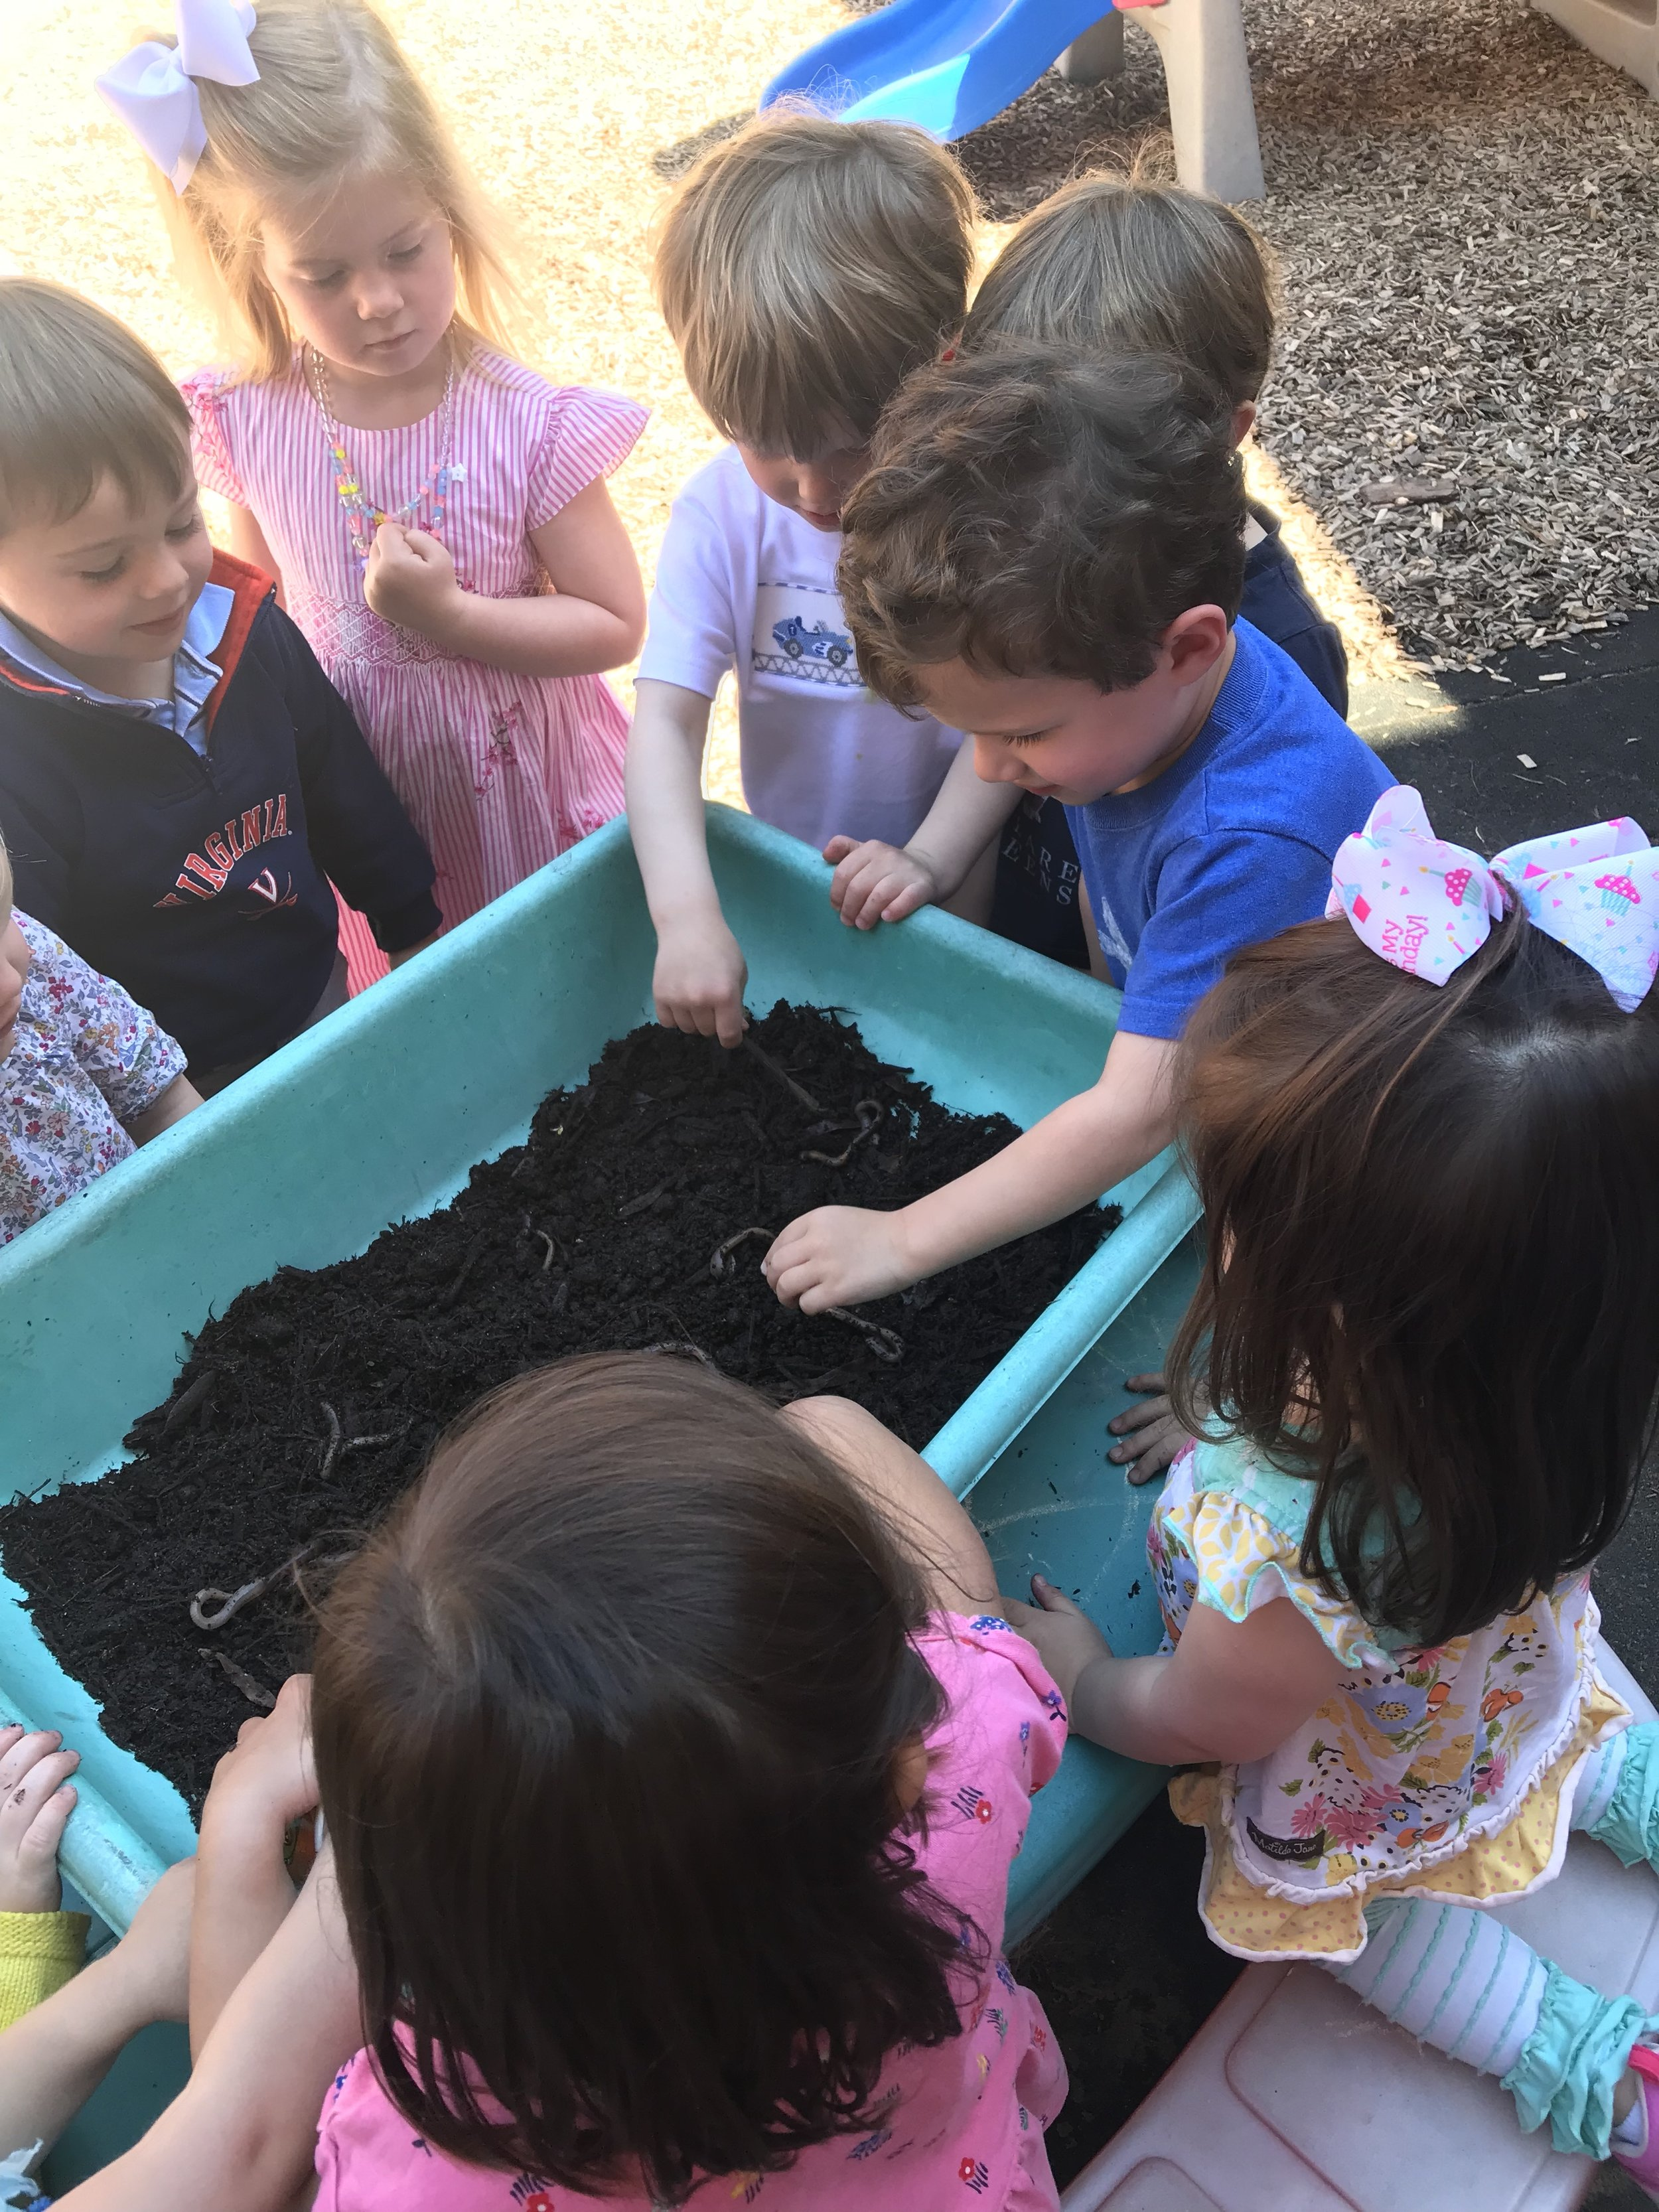 We had worms on the courtyard this week - the children loved the sensory experience.